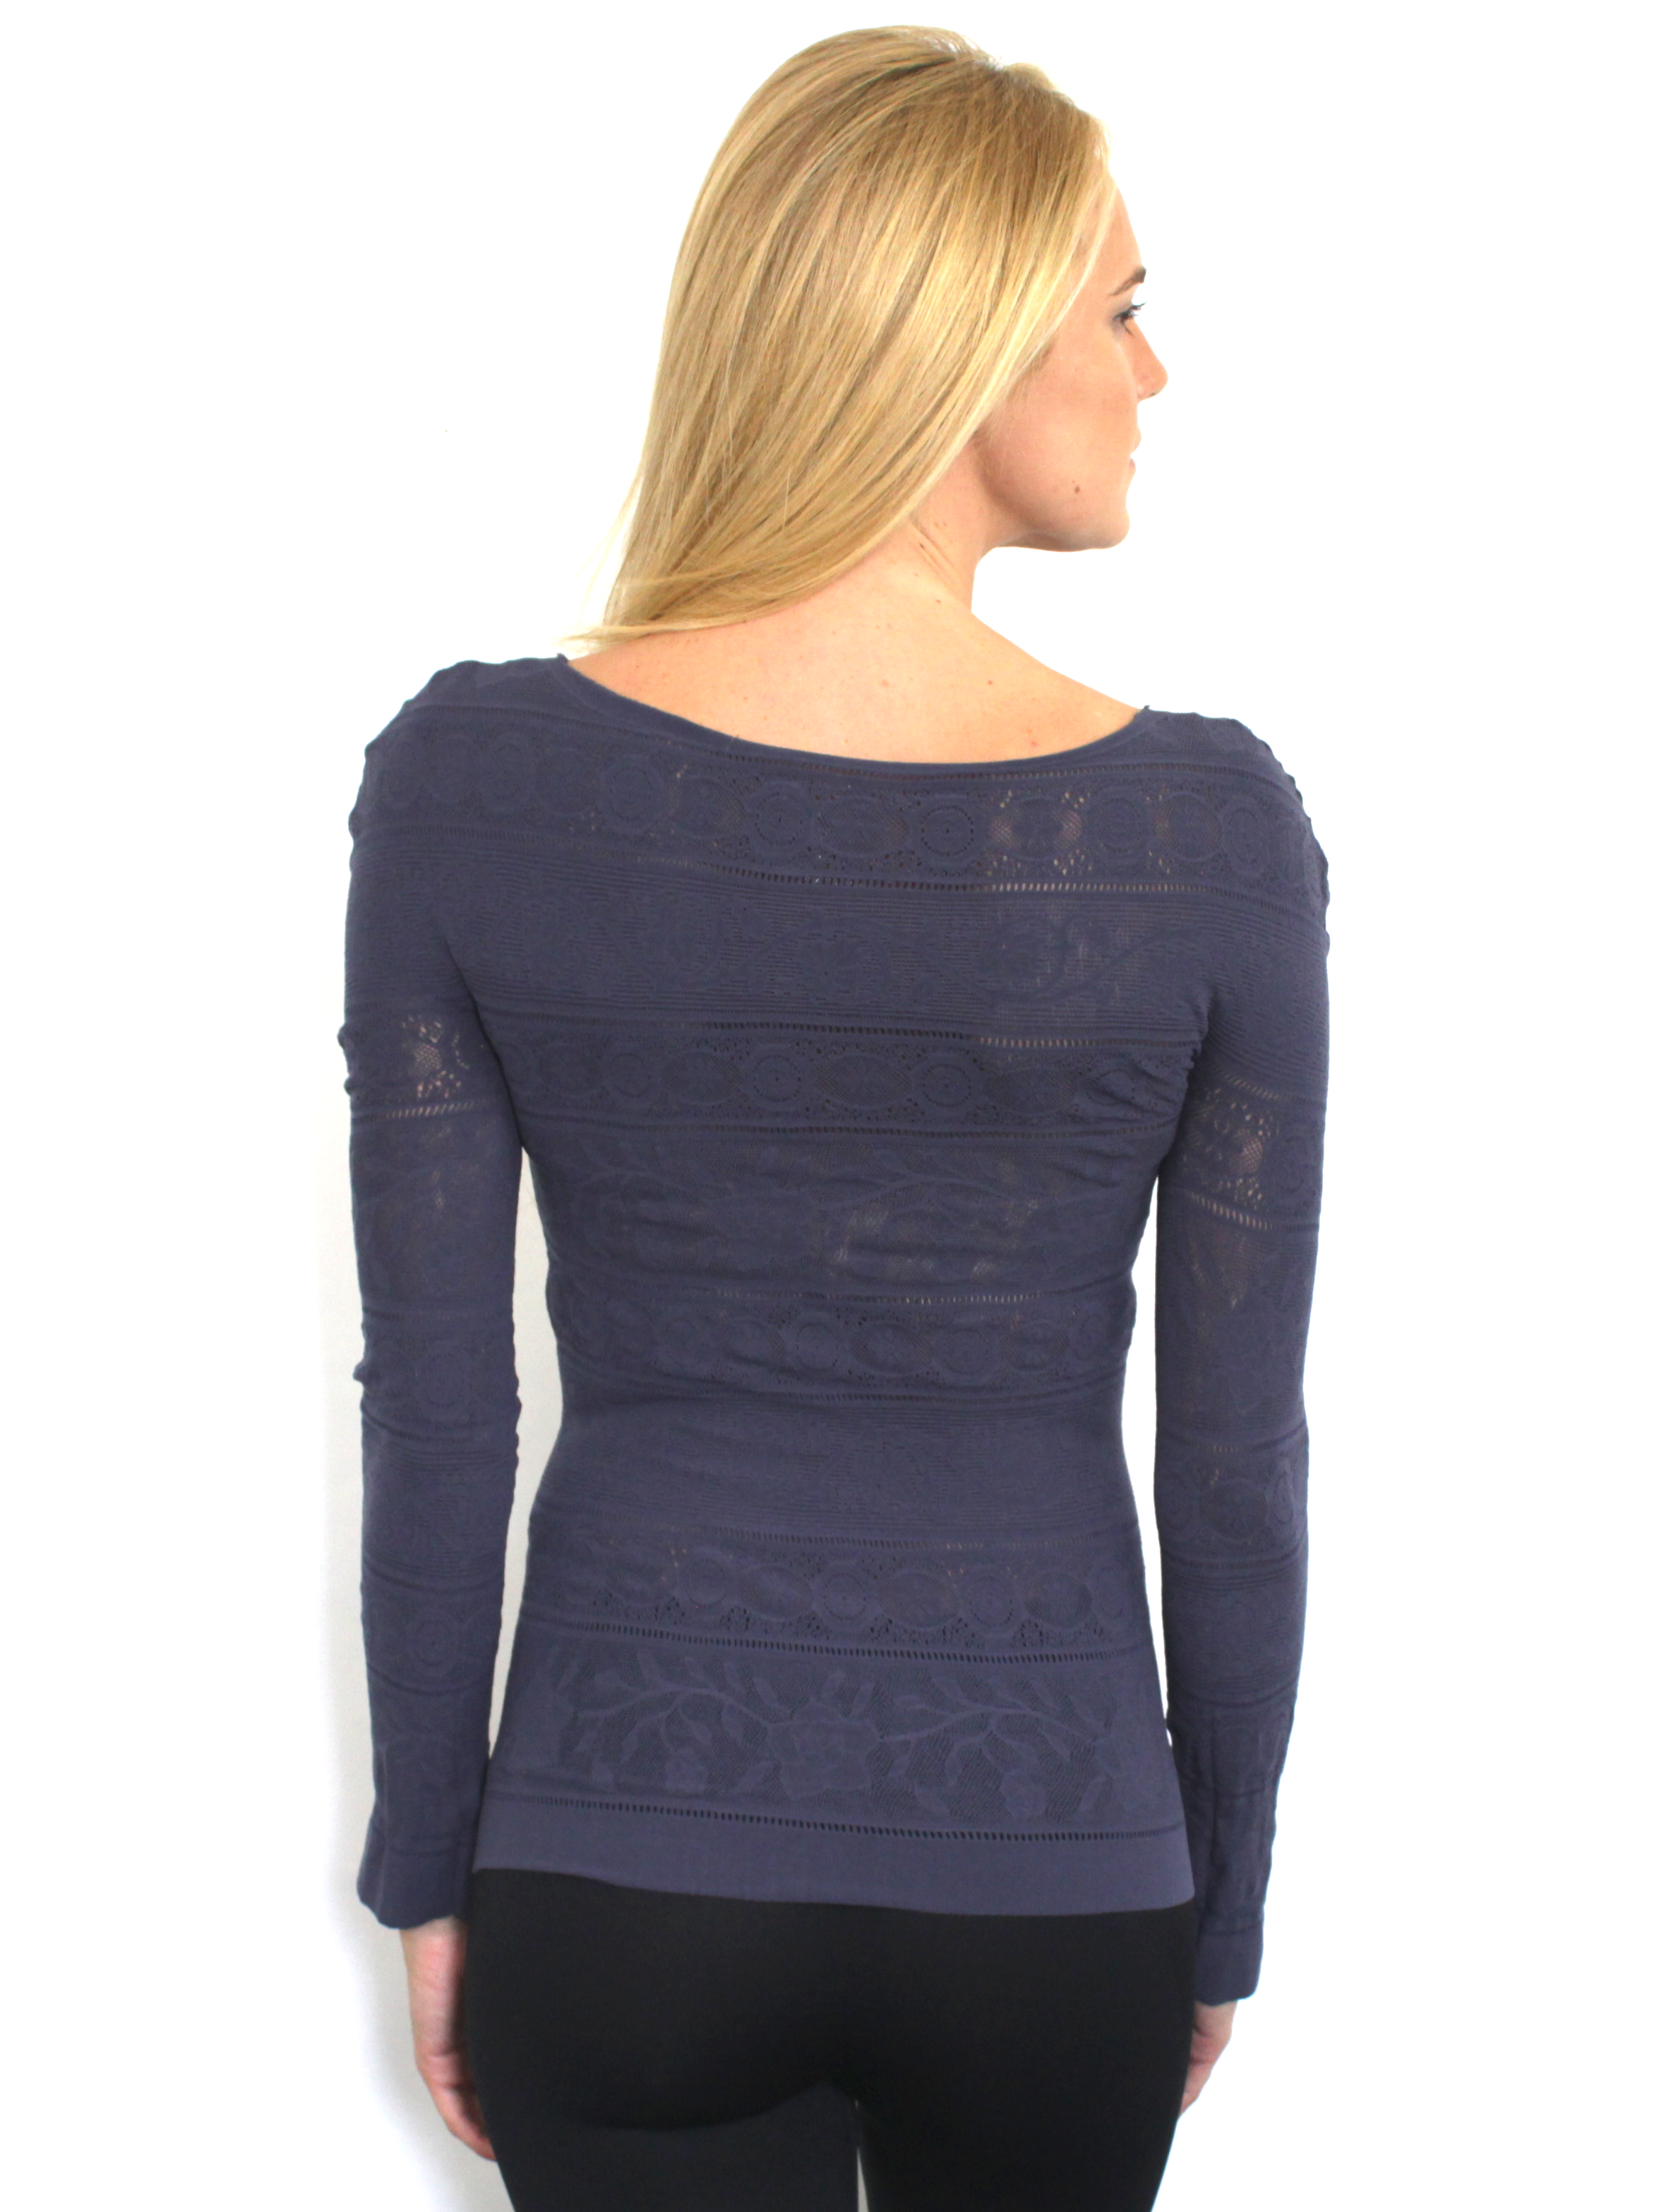 New Free People Womens Seamless Long Sleeve V Neck Skinny Top Navy Xs-L $68